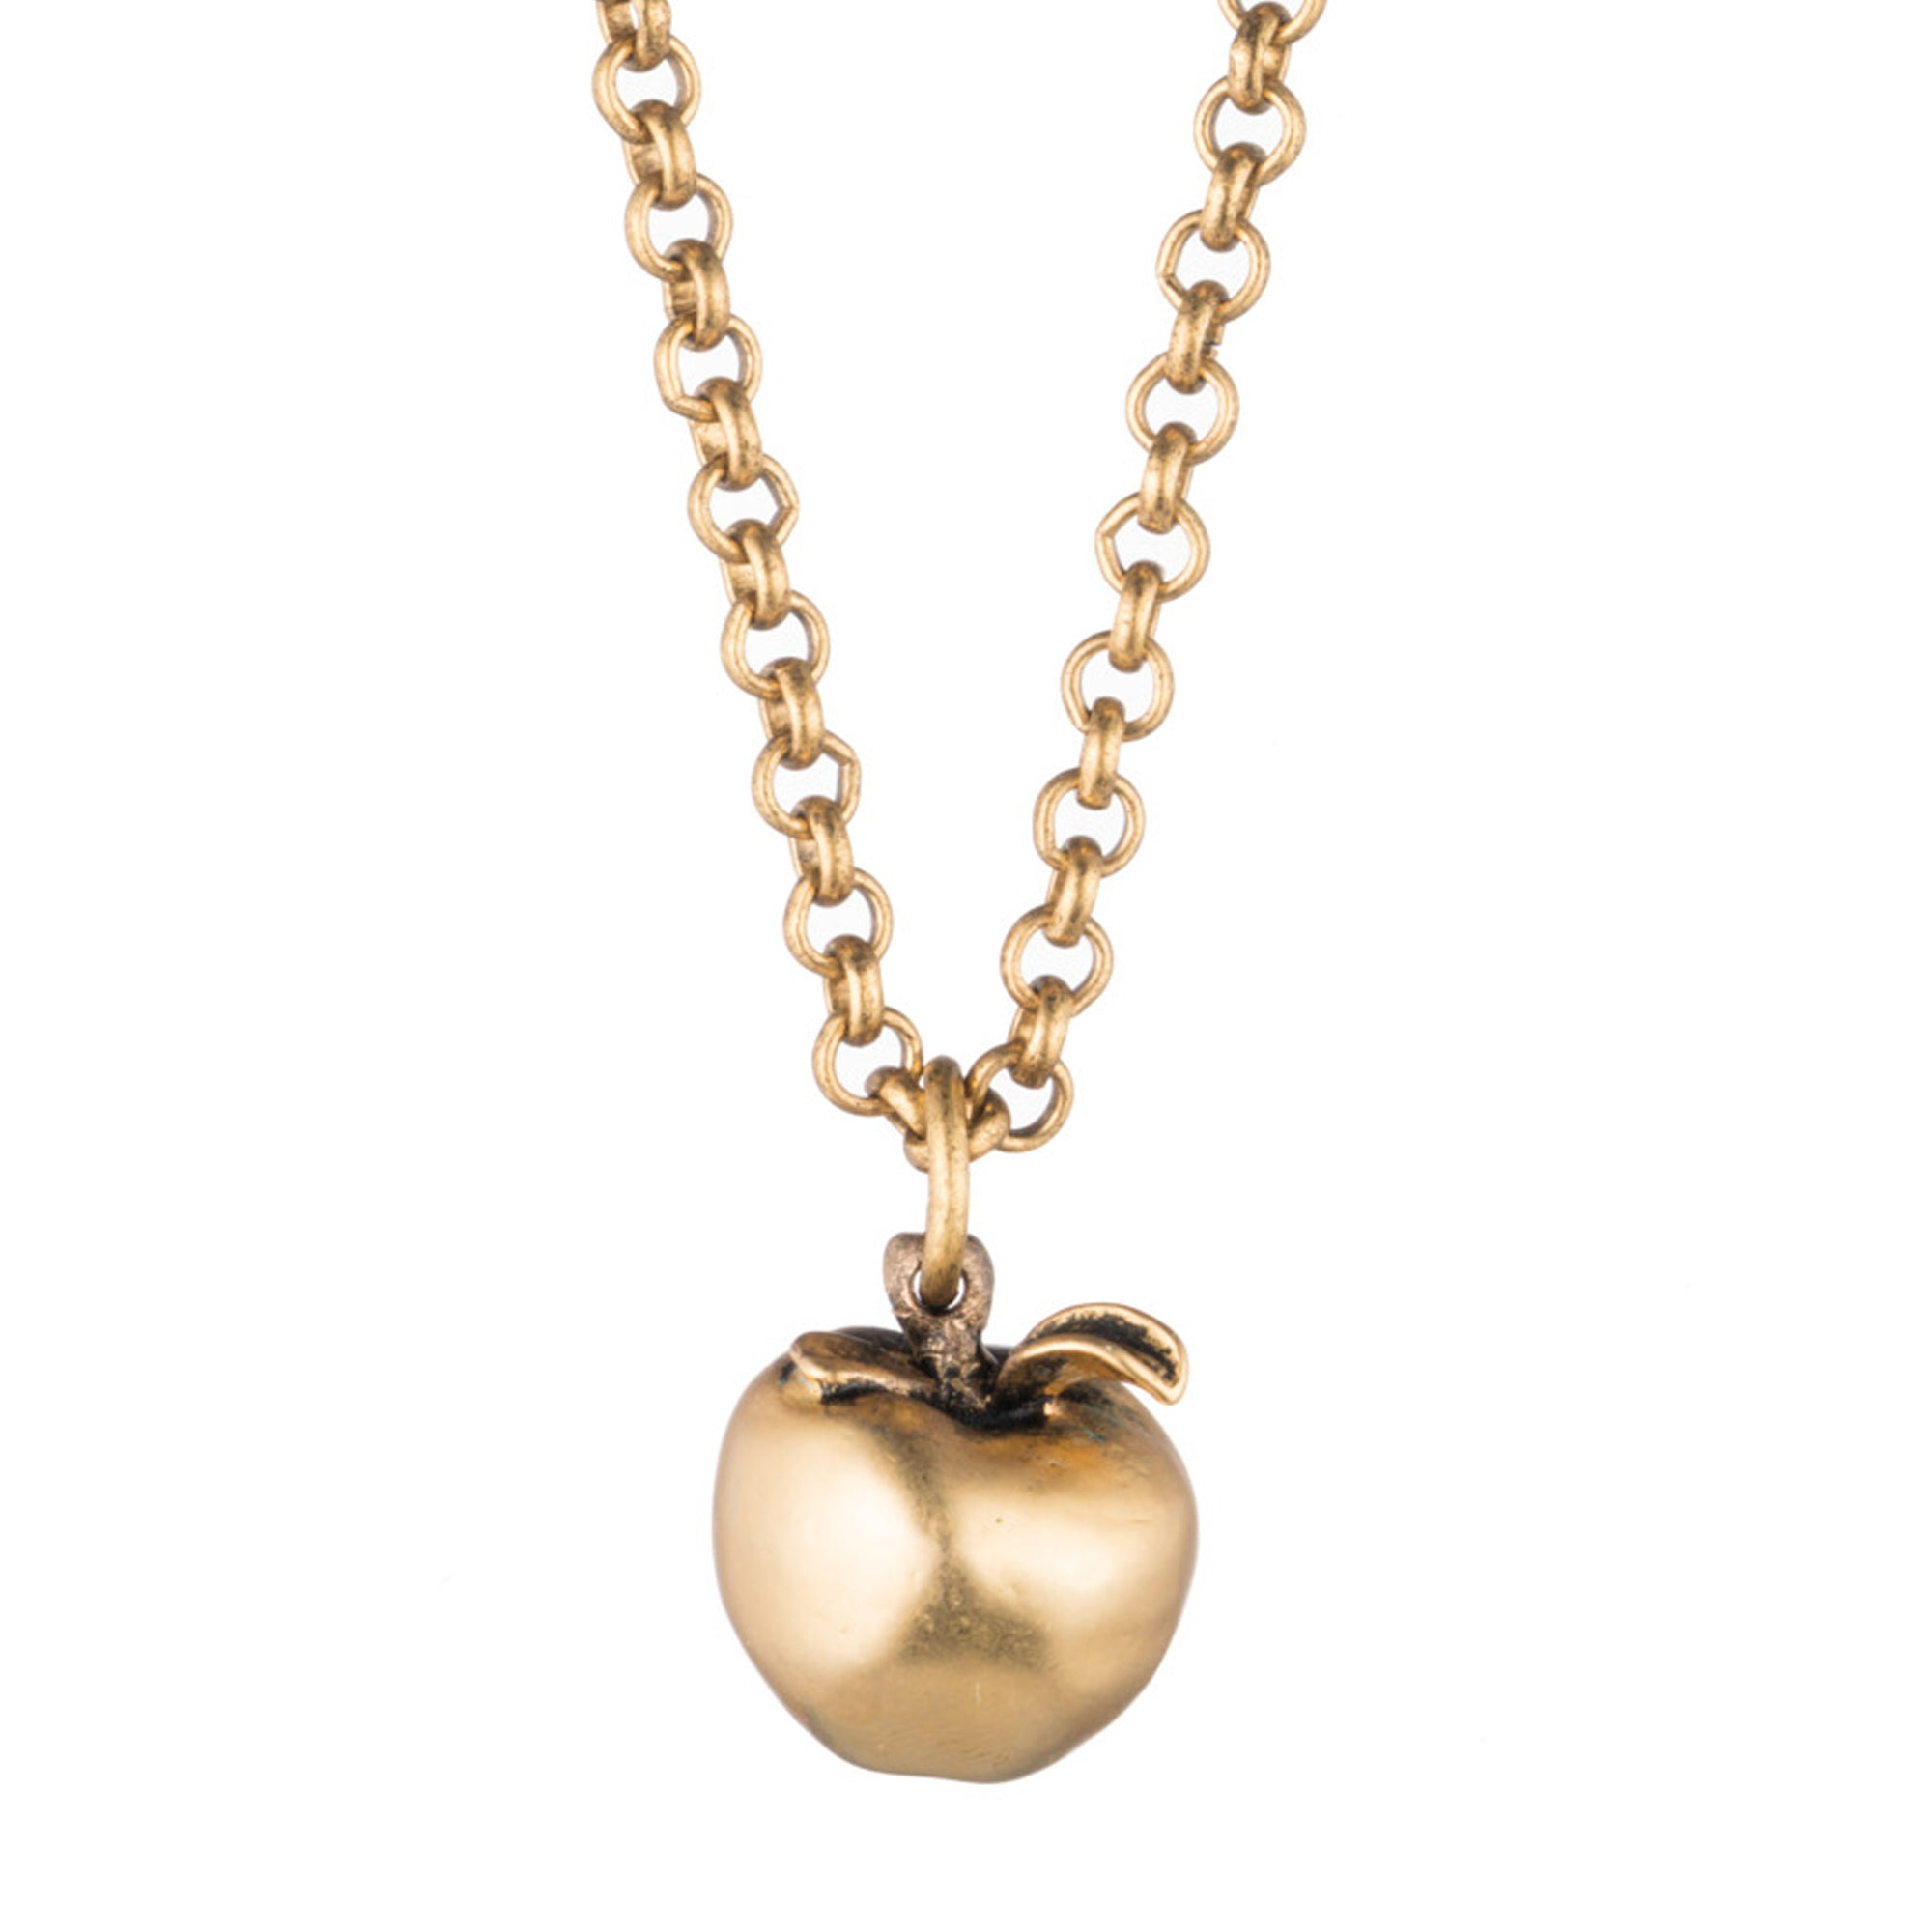 The big apple necklace gold apple pendant necklace orchard gold apple pendant necklace with antique matte finish aloadofball Images